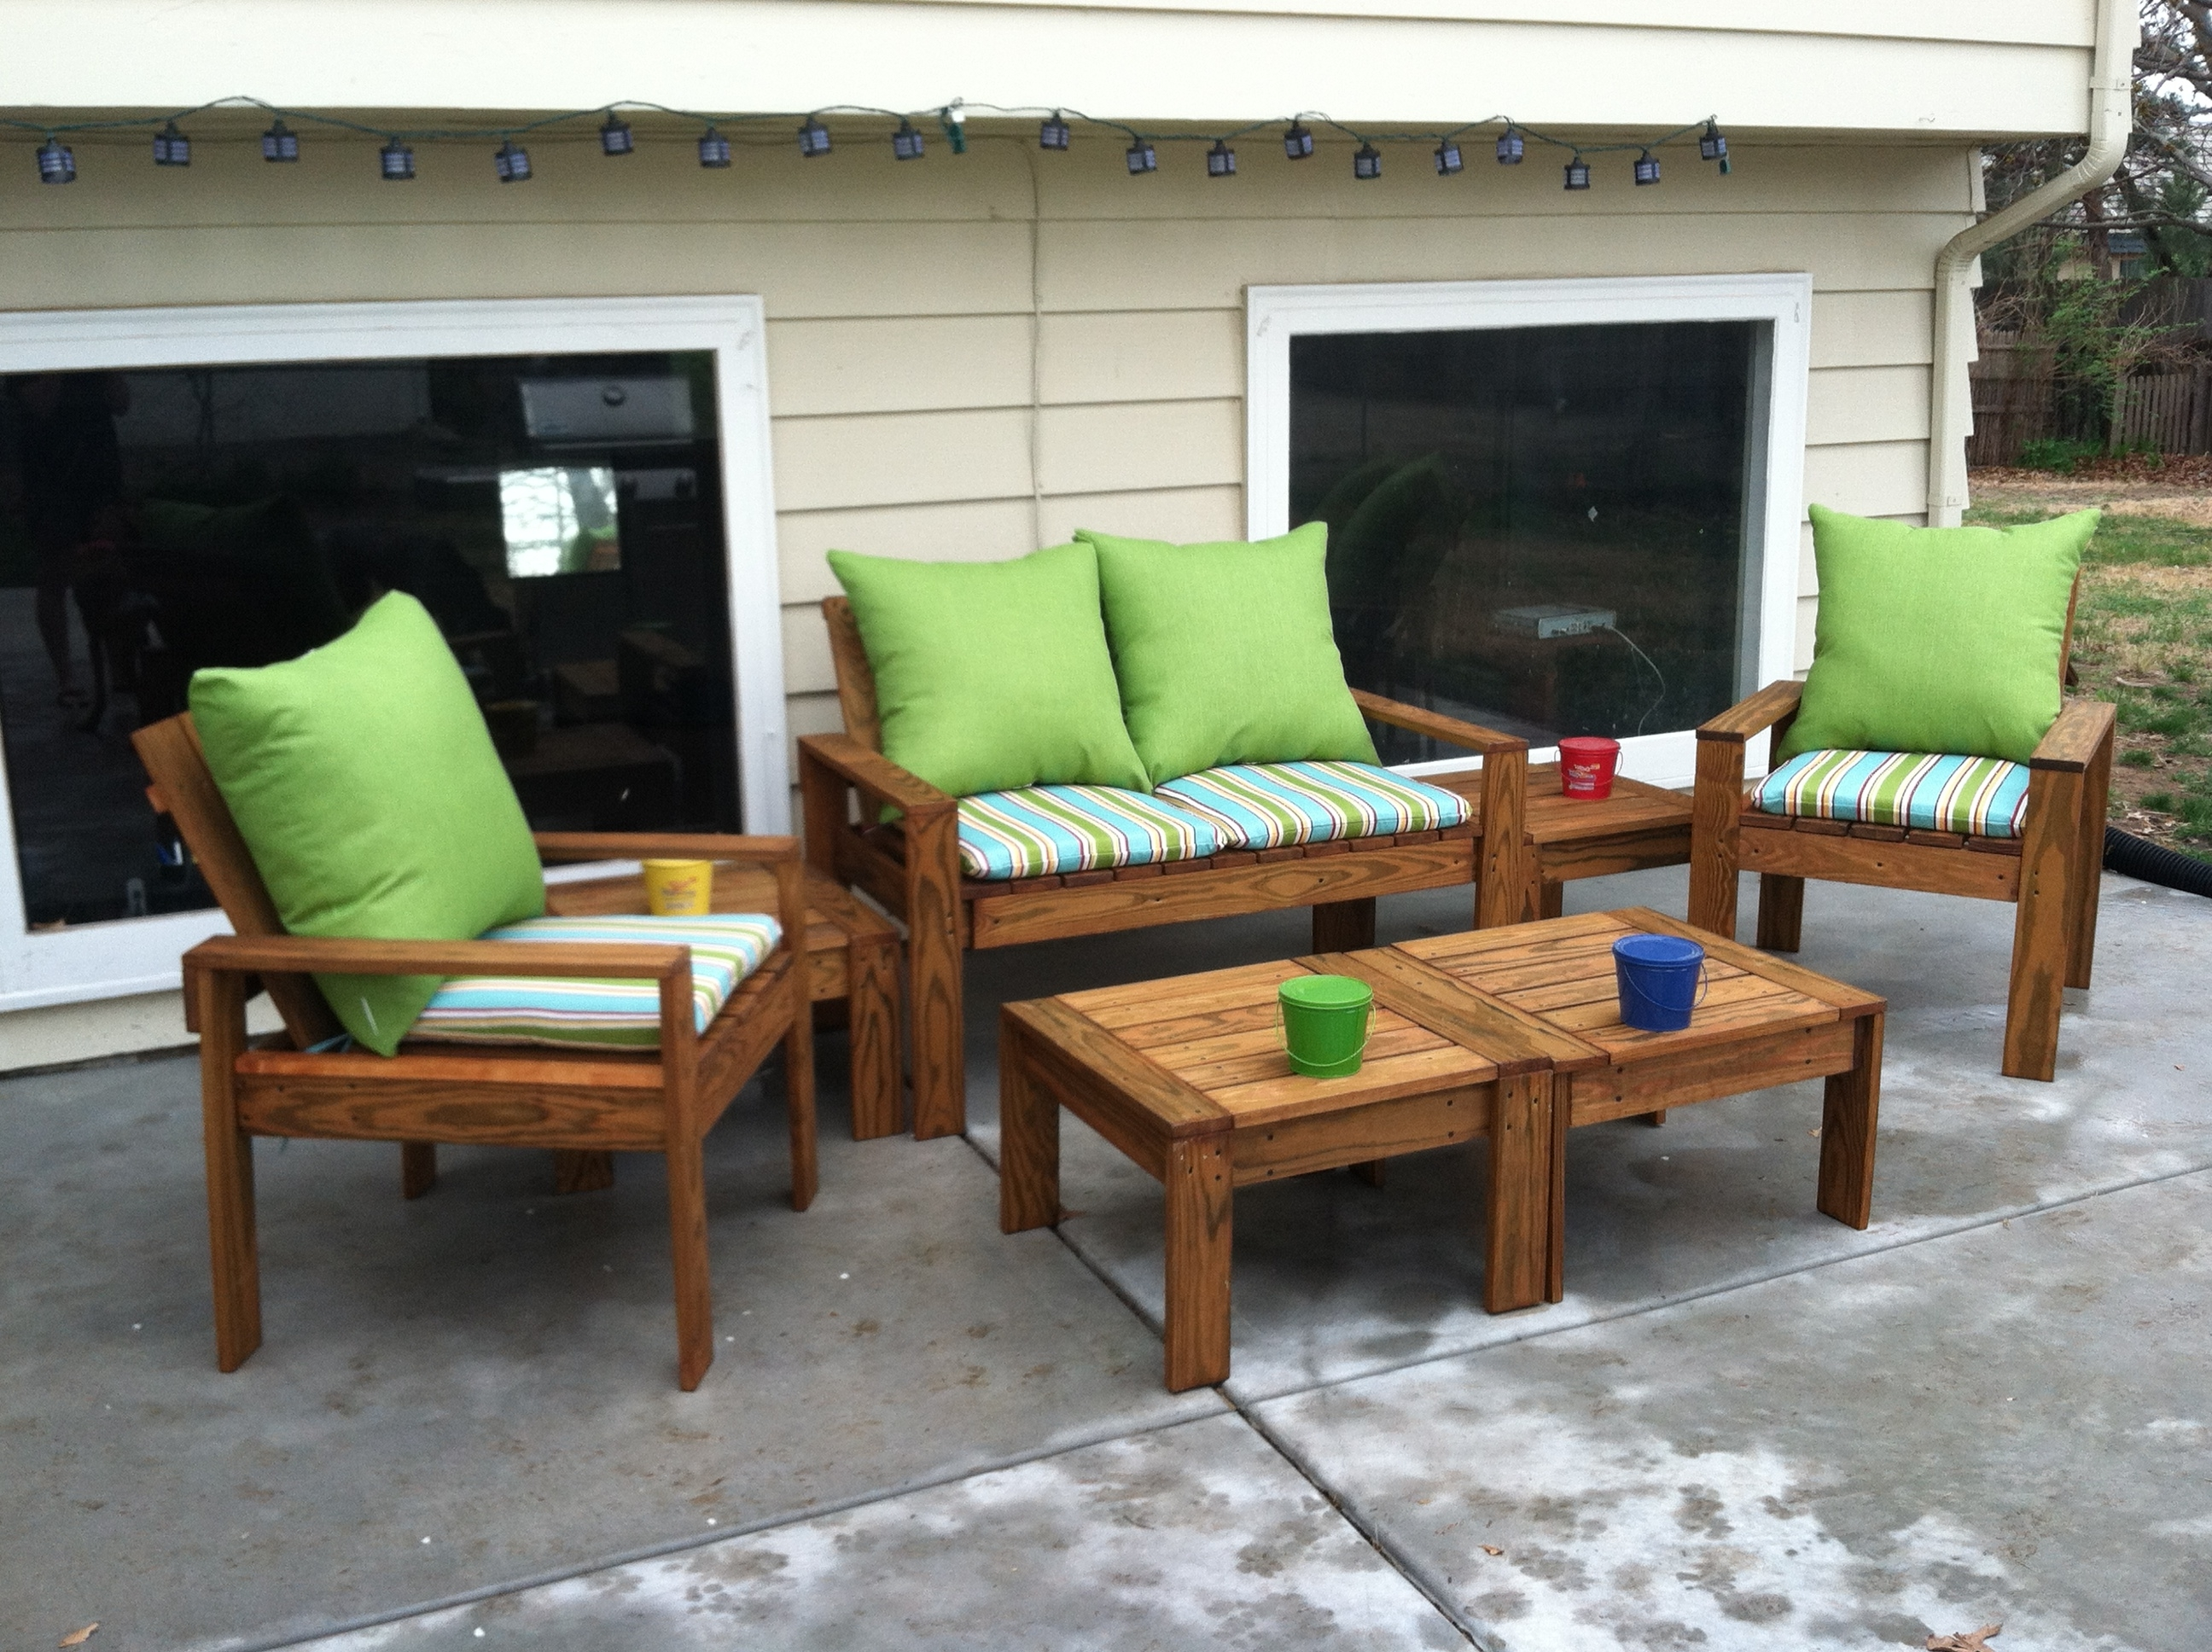 Simple Outdoor Conversation Set – Diy Projects With Fashionable Patio Conversation Sets (View 14 of 15)